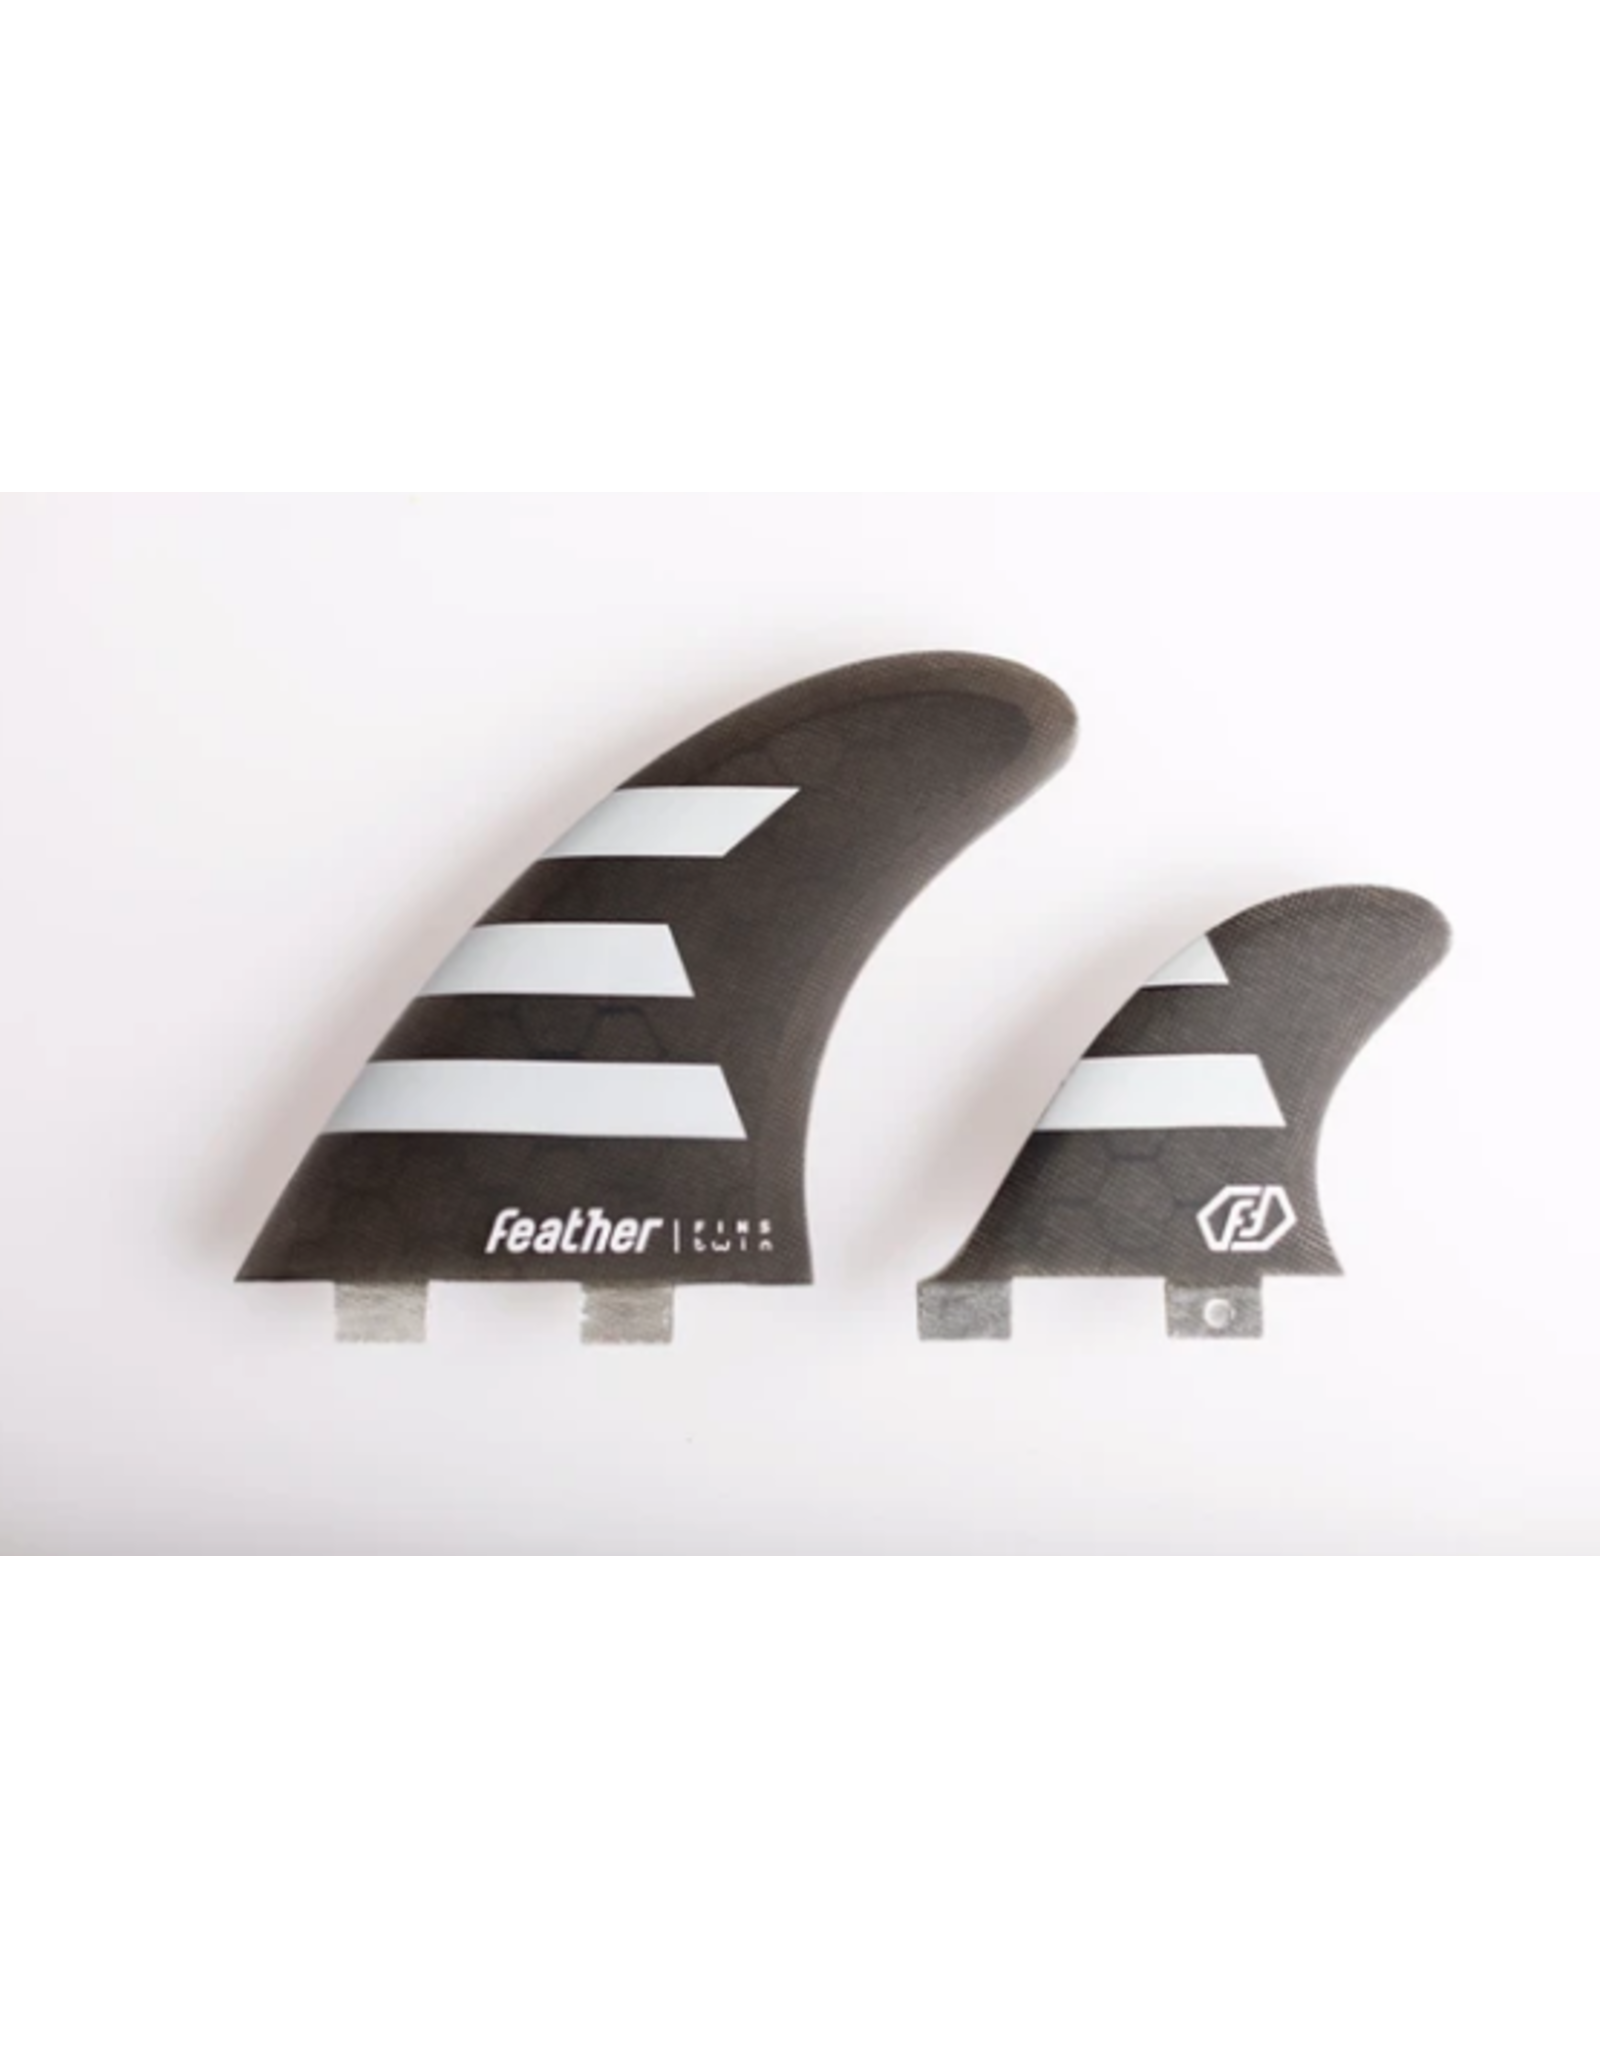 Feather Fins Feather Fins Twin 2 + 1 FCS Dual Tab